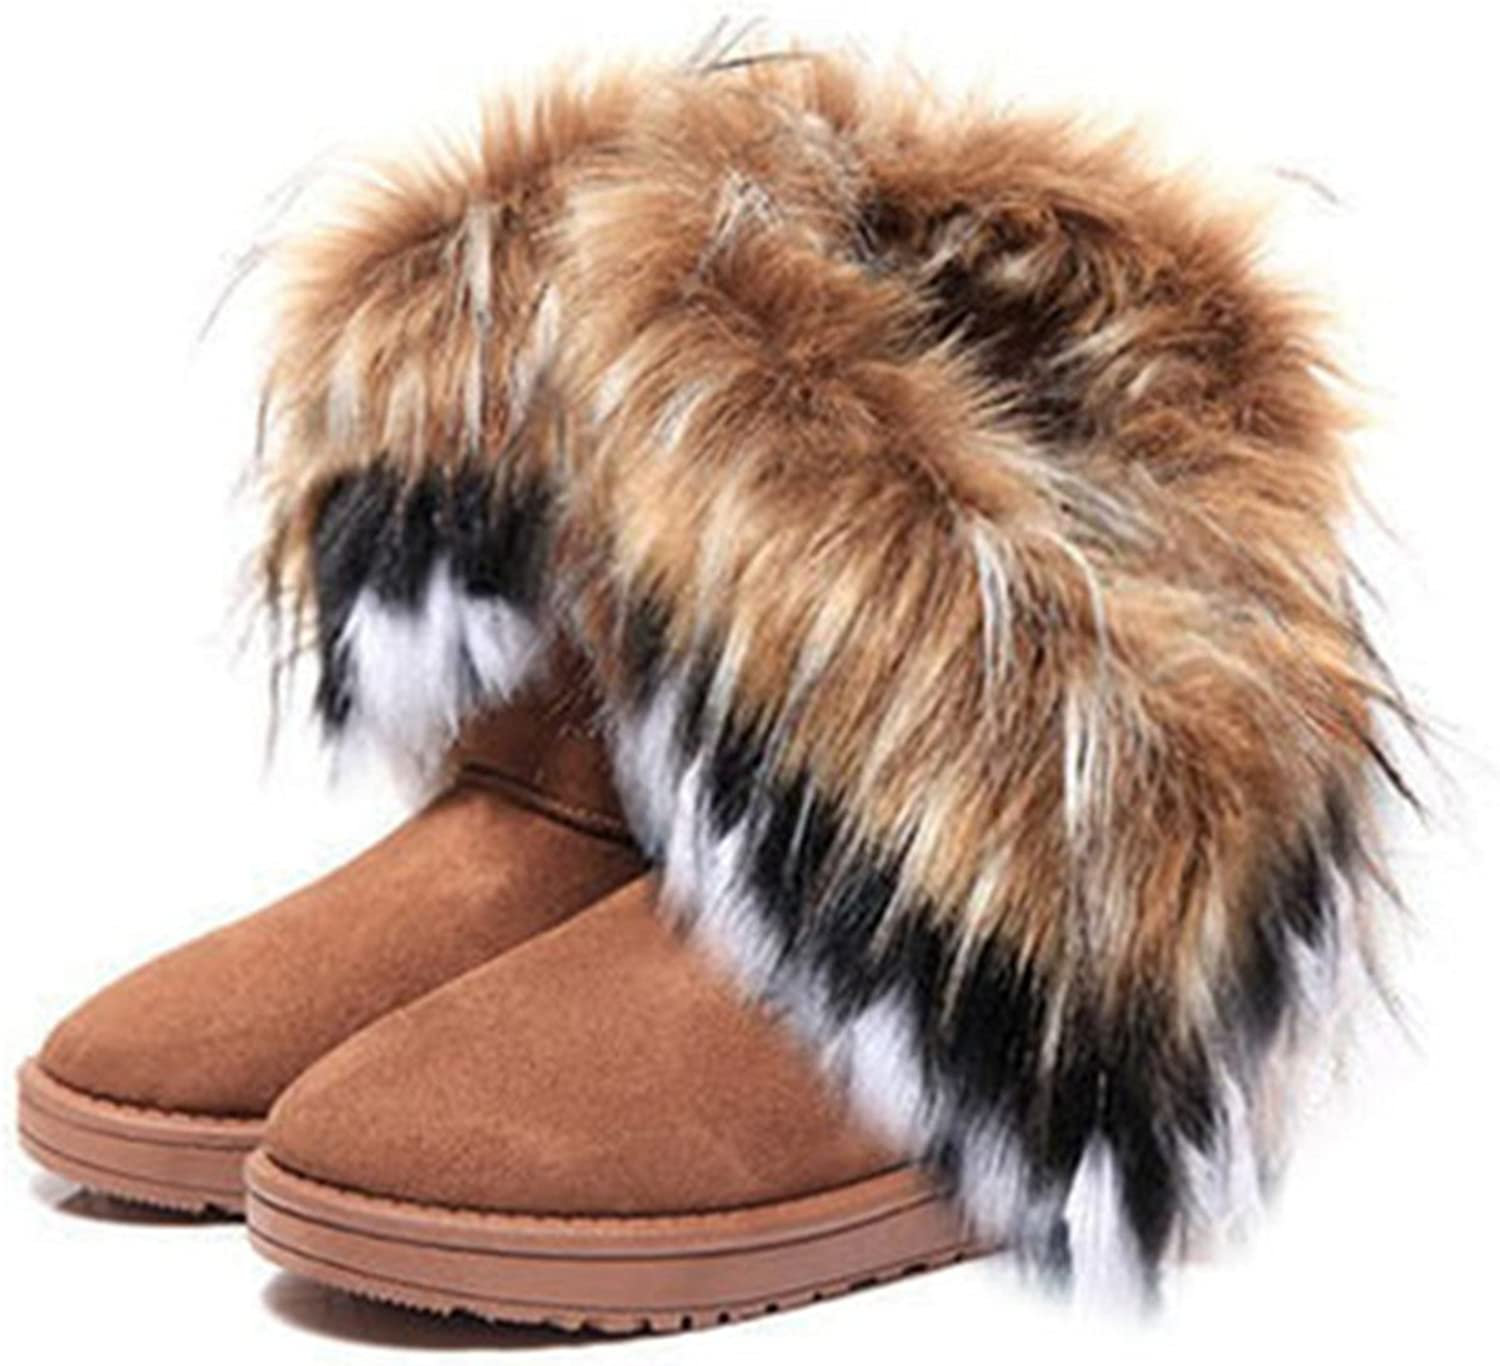 Better Annie Women Flat Ankle Snow Boots Fur Boots Winter Warm Snow shoes Round-Toe Female Flock Leather Women shoes